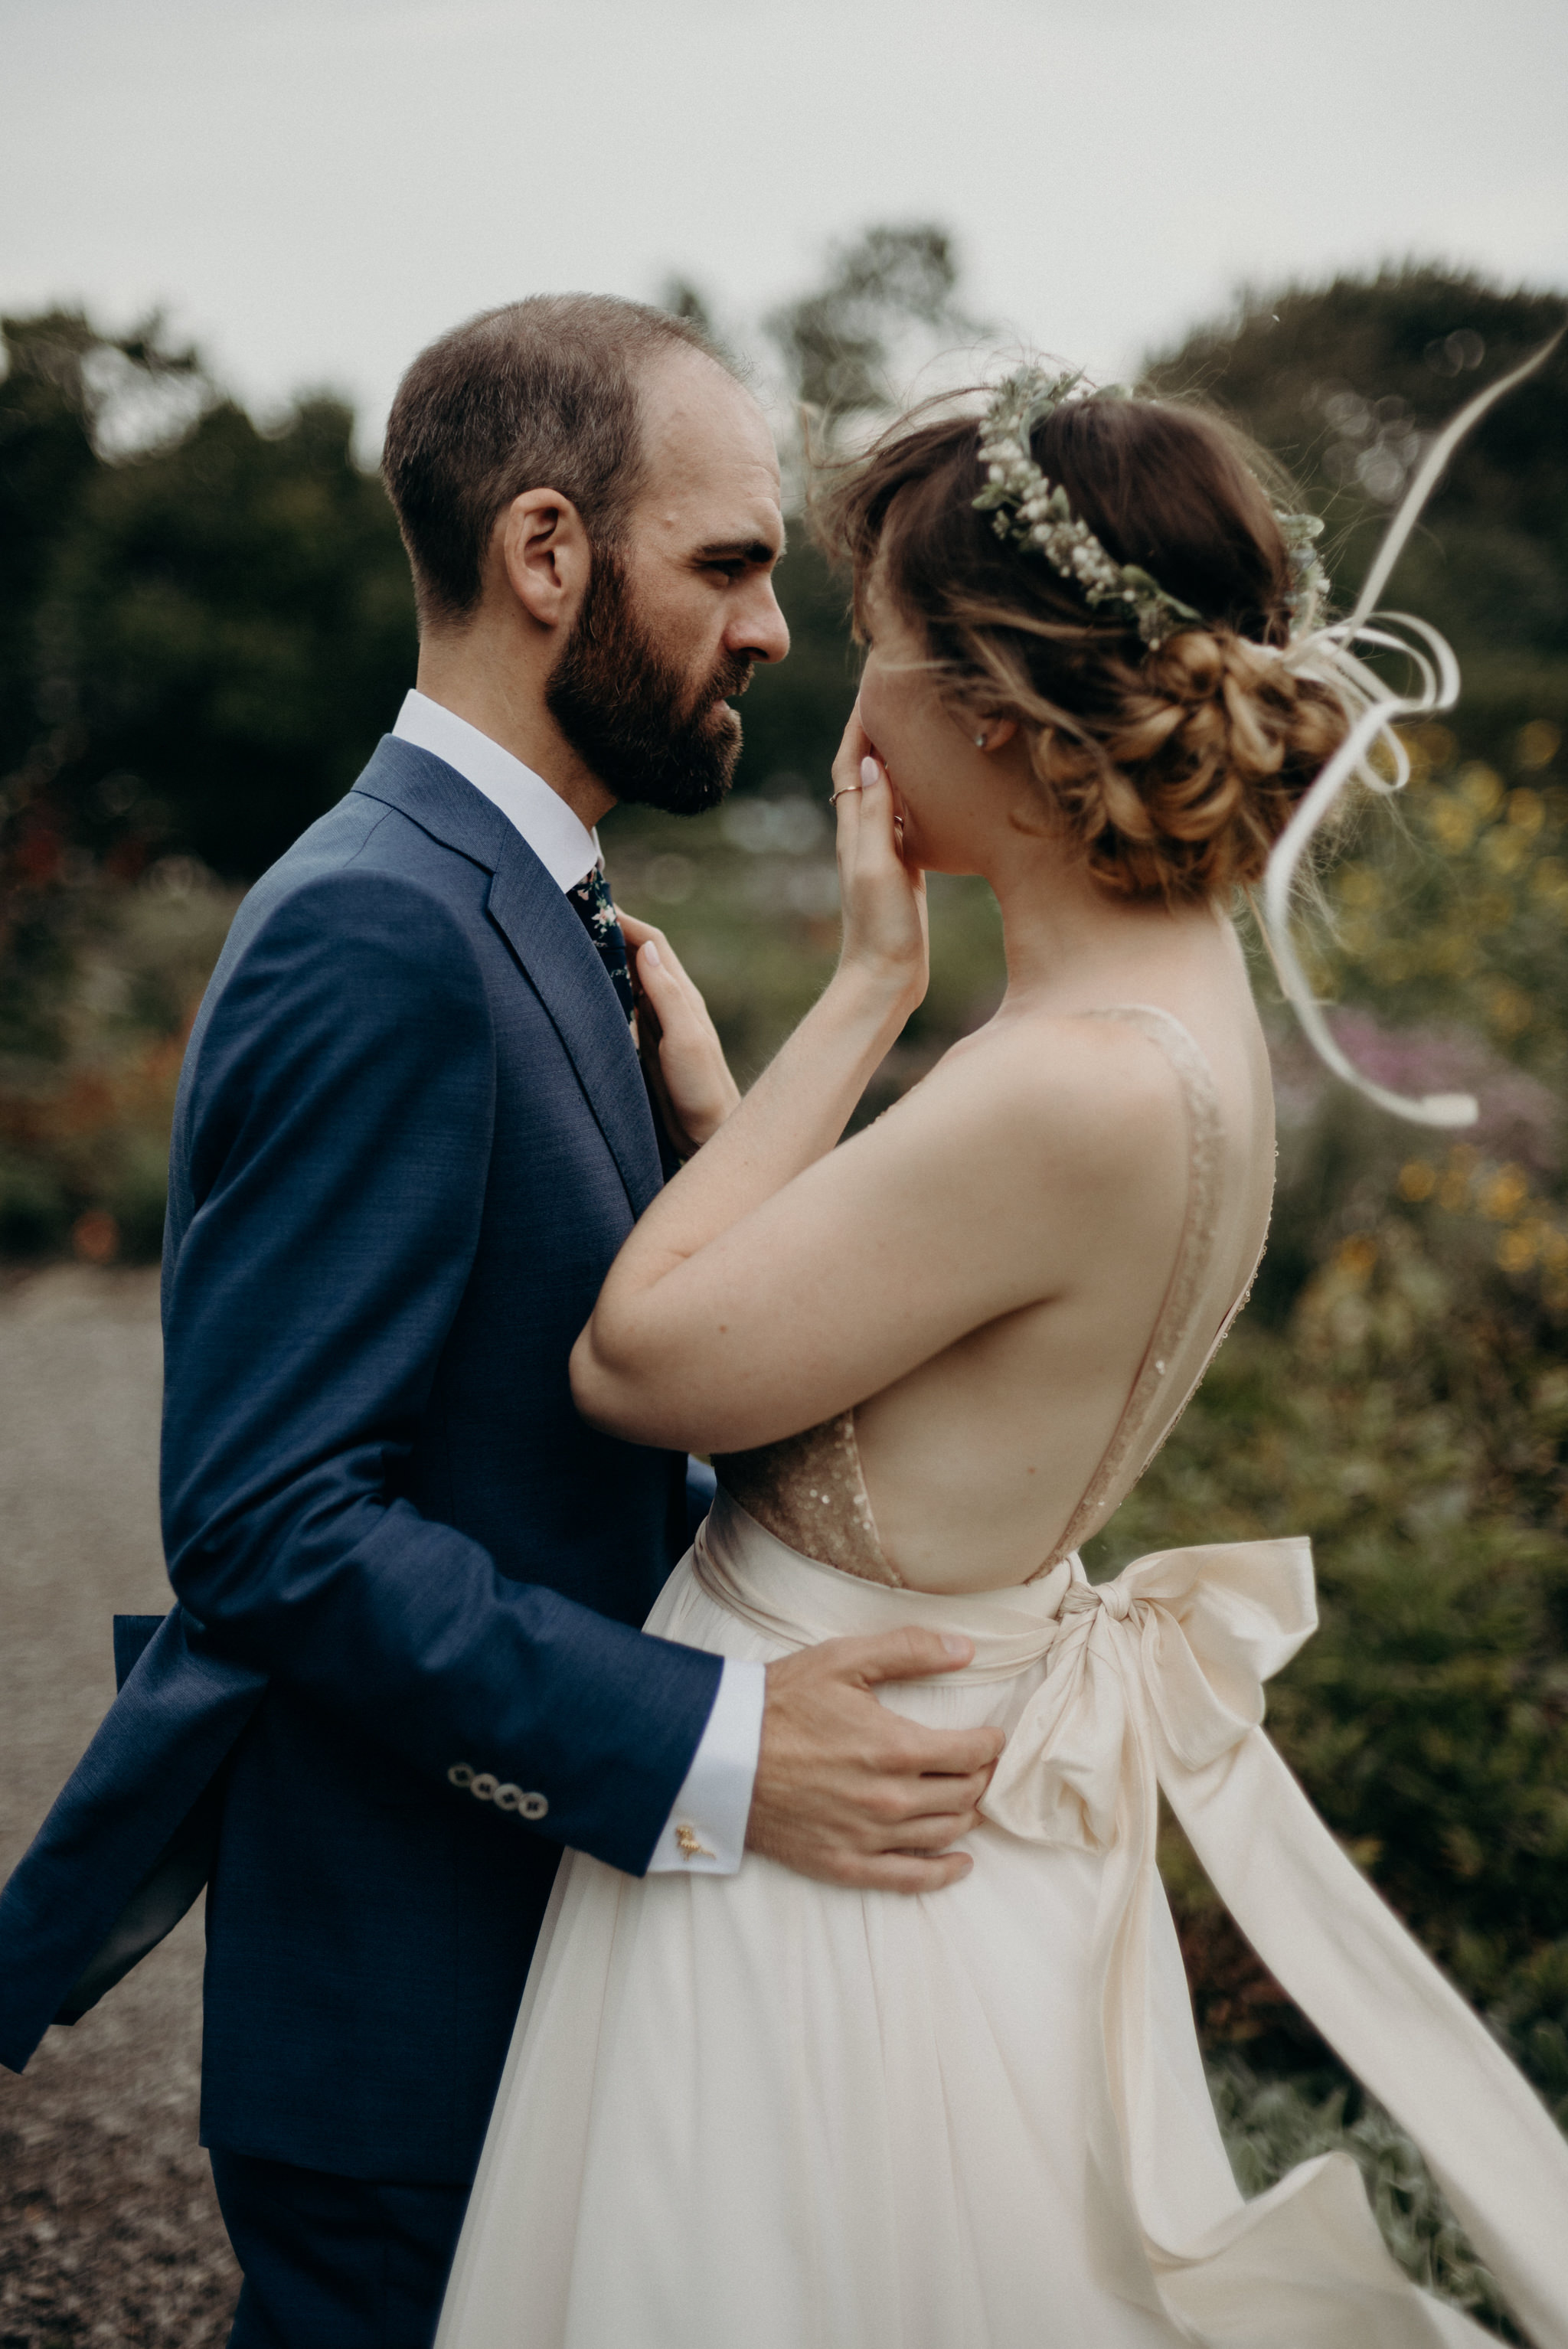 bride hugging groom in gardens on a windy day